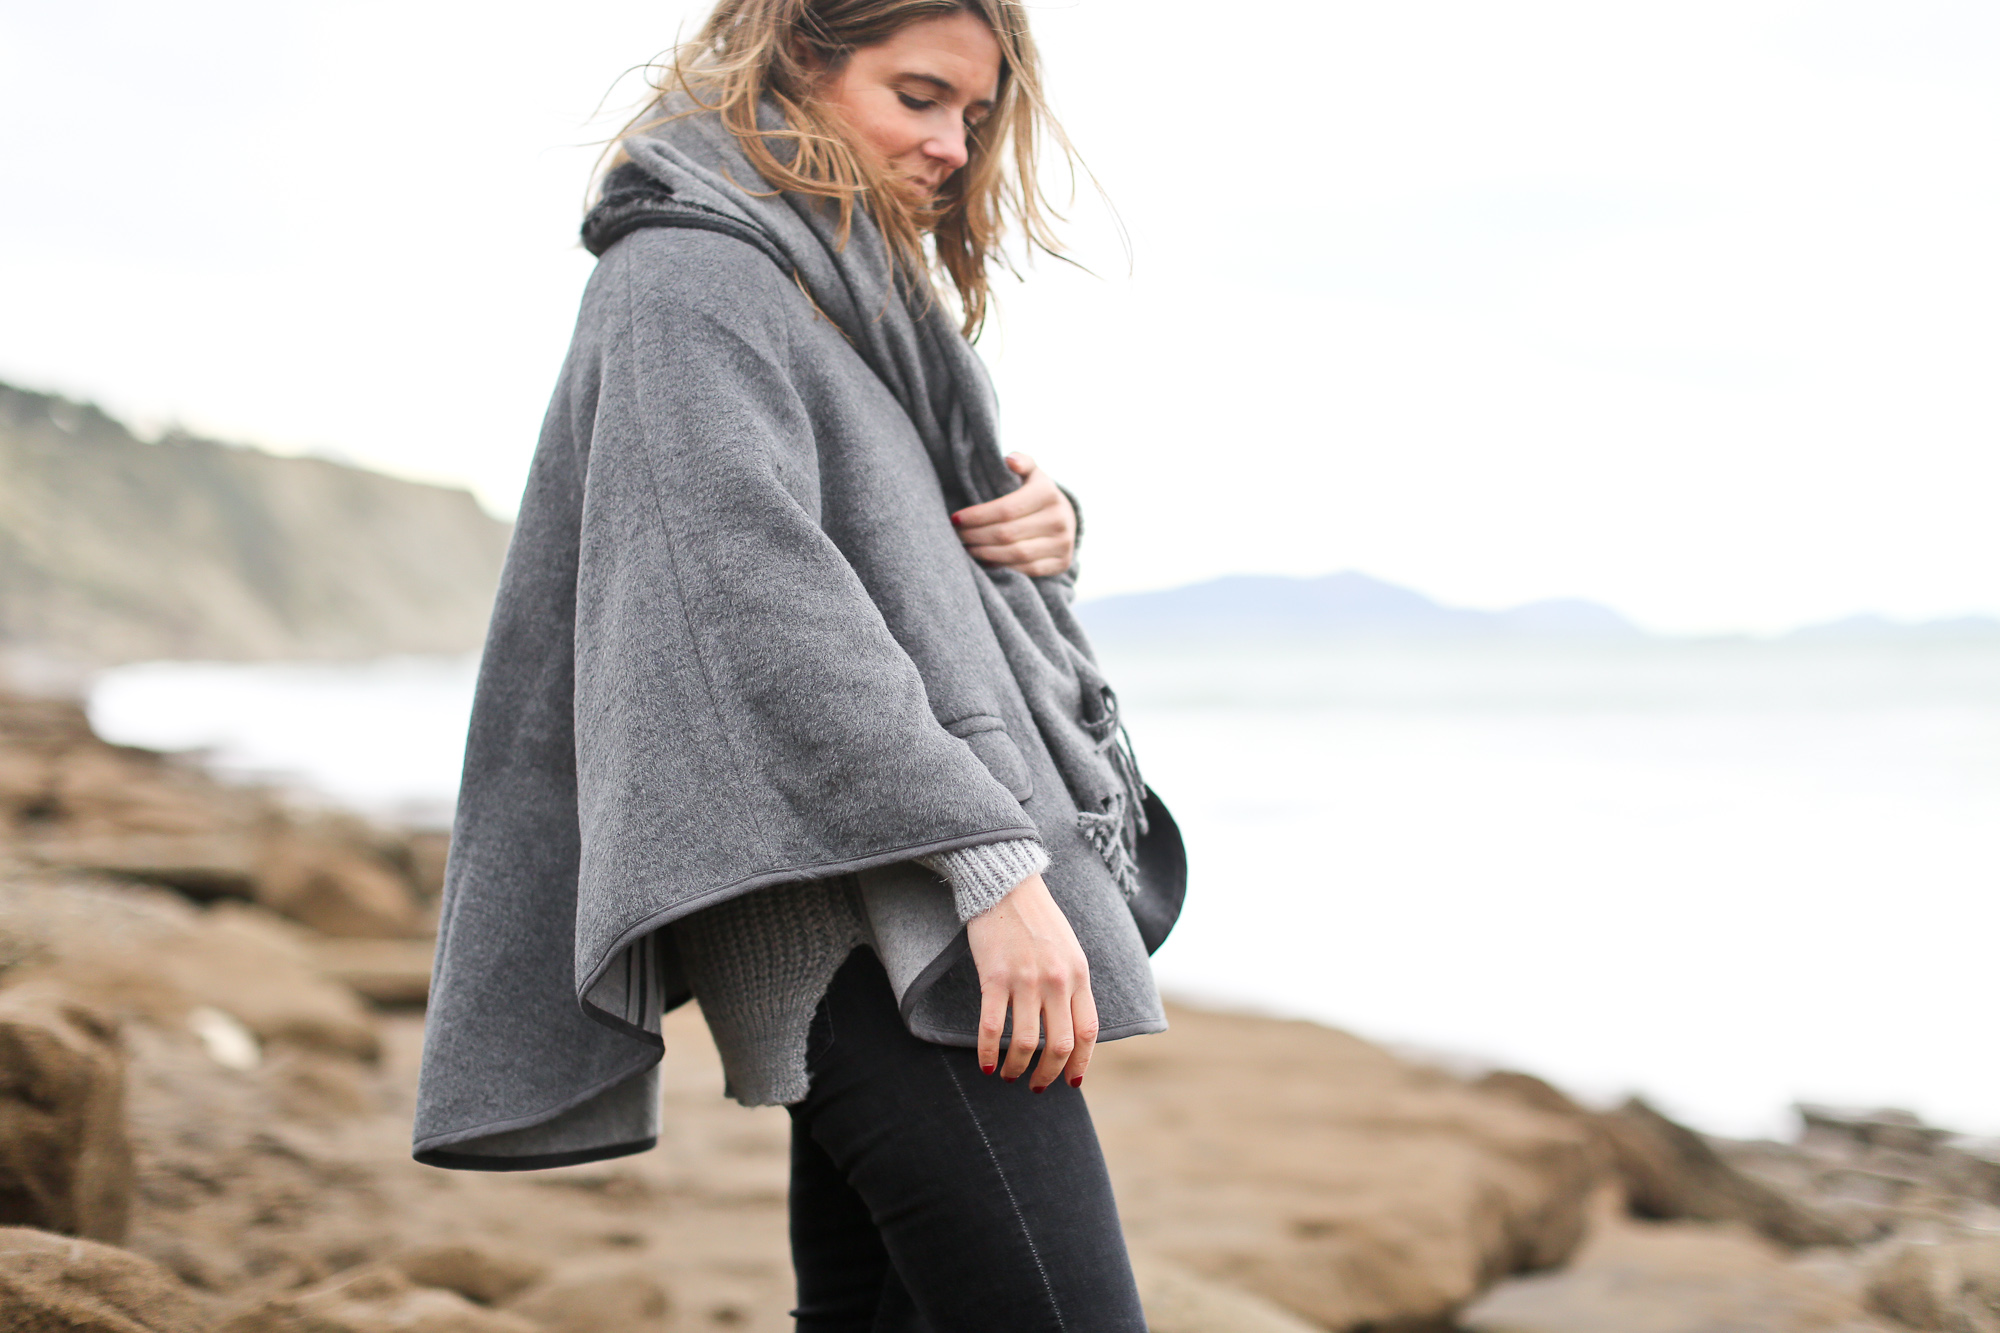 Clochet_streetstyle_chicwish_grey_chunkyknit_acnestudios_canada_scarf_wool_cape_pertini_boots-11